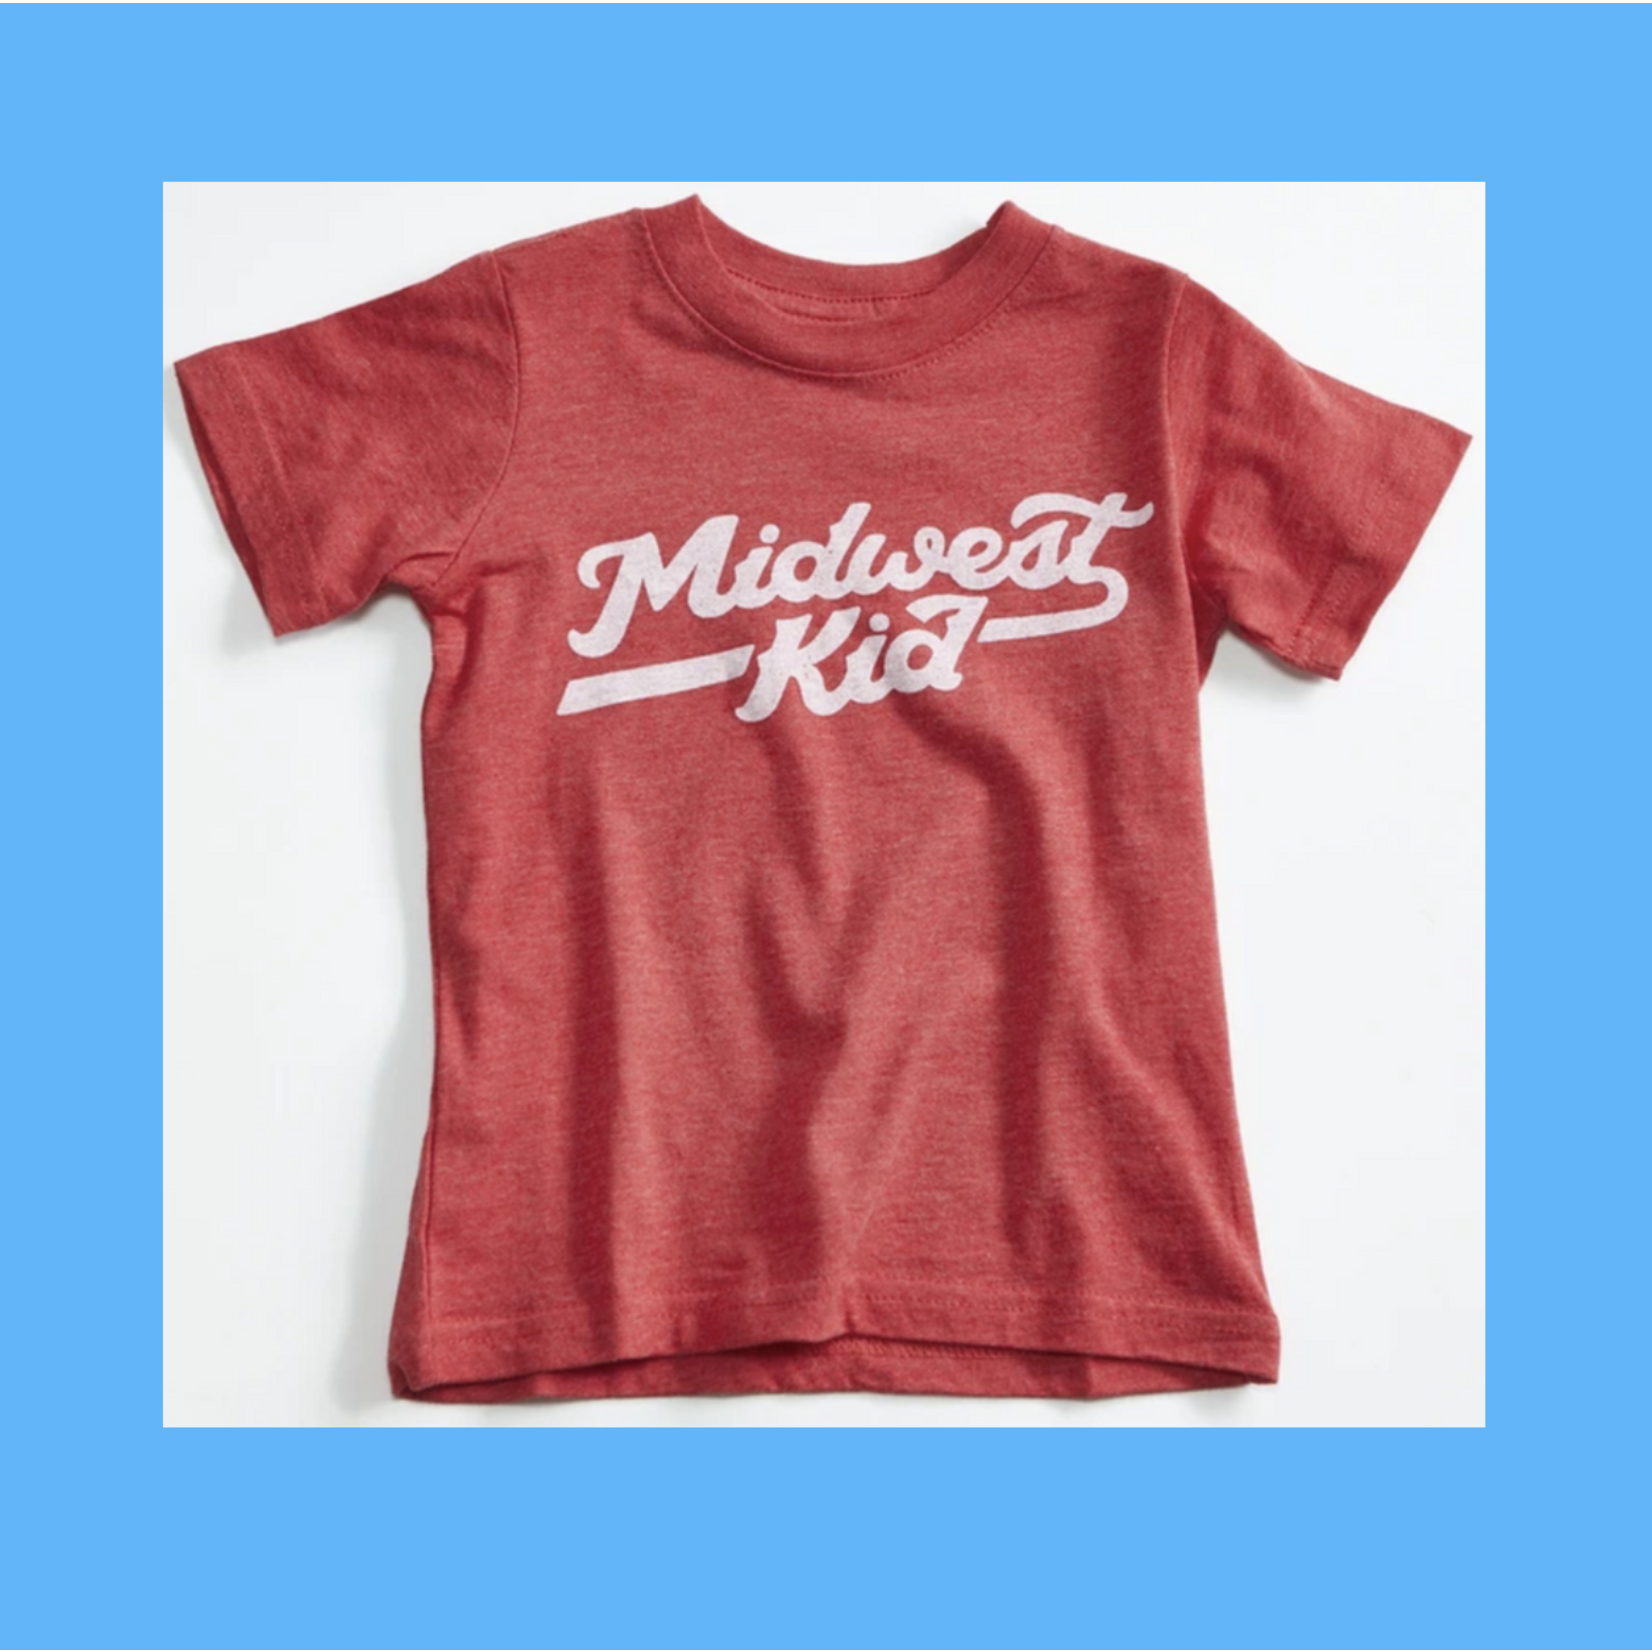 Orchard Street Apparel Midwest Kid Heather Red Toddler + Youth Tee